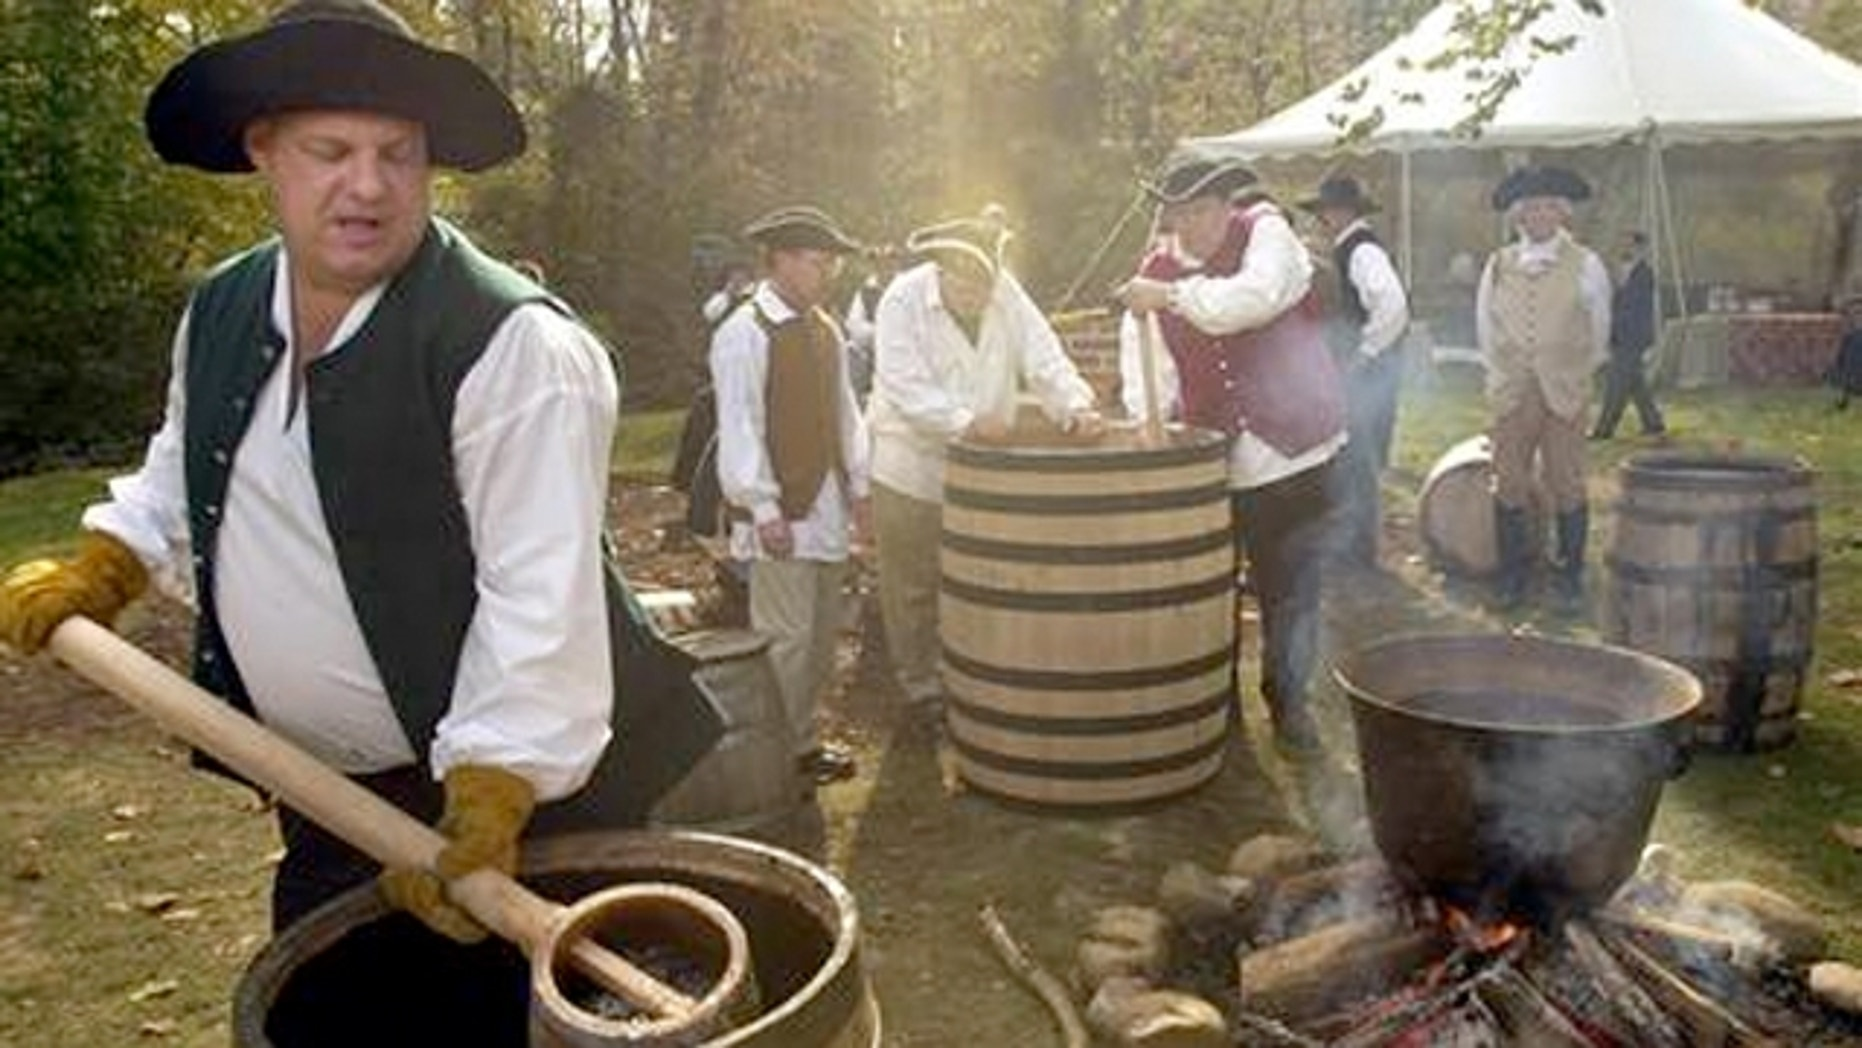 Master distillers at Mount Vernon's Gristmill and Distillery